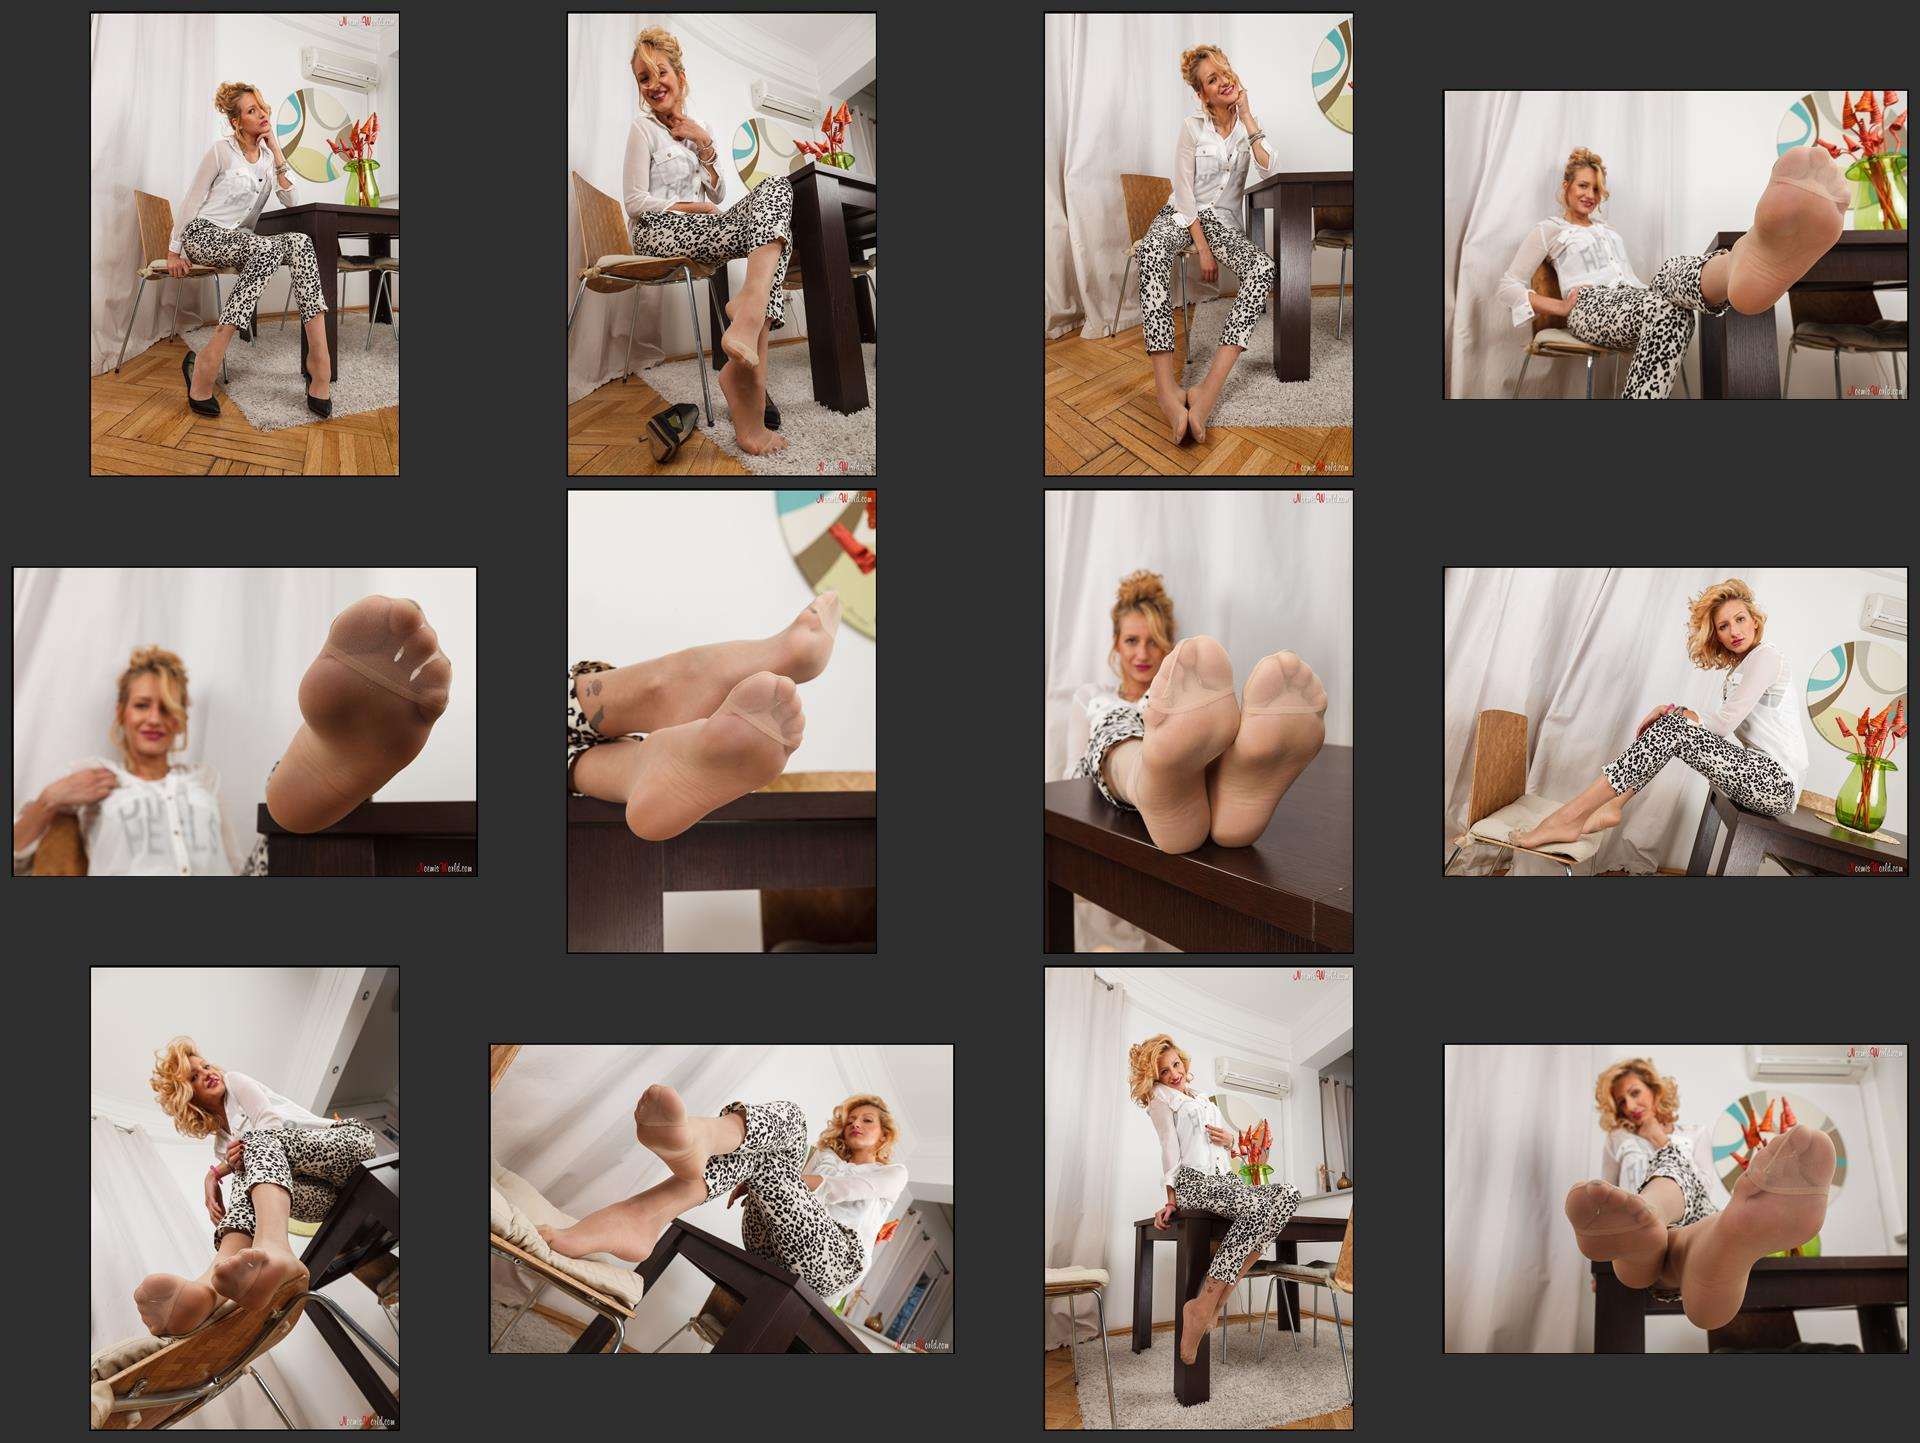 Noemi's World - Pearl - So you love to sniff feet in pantyhose? - Femdom Pictures